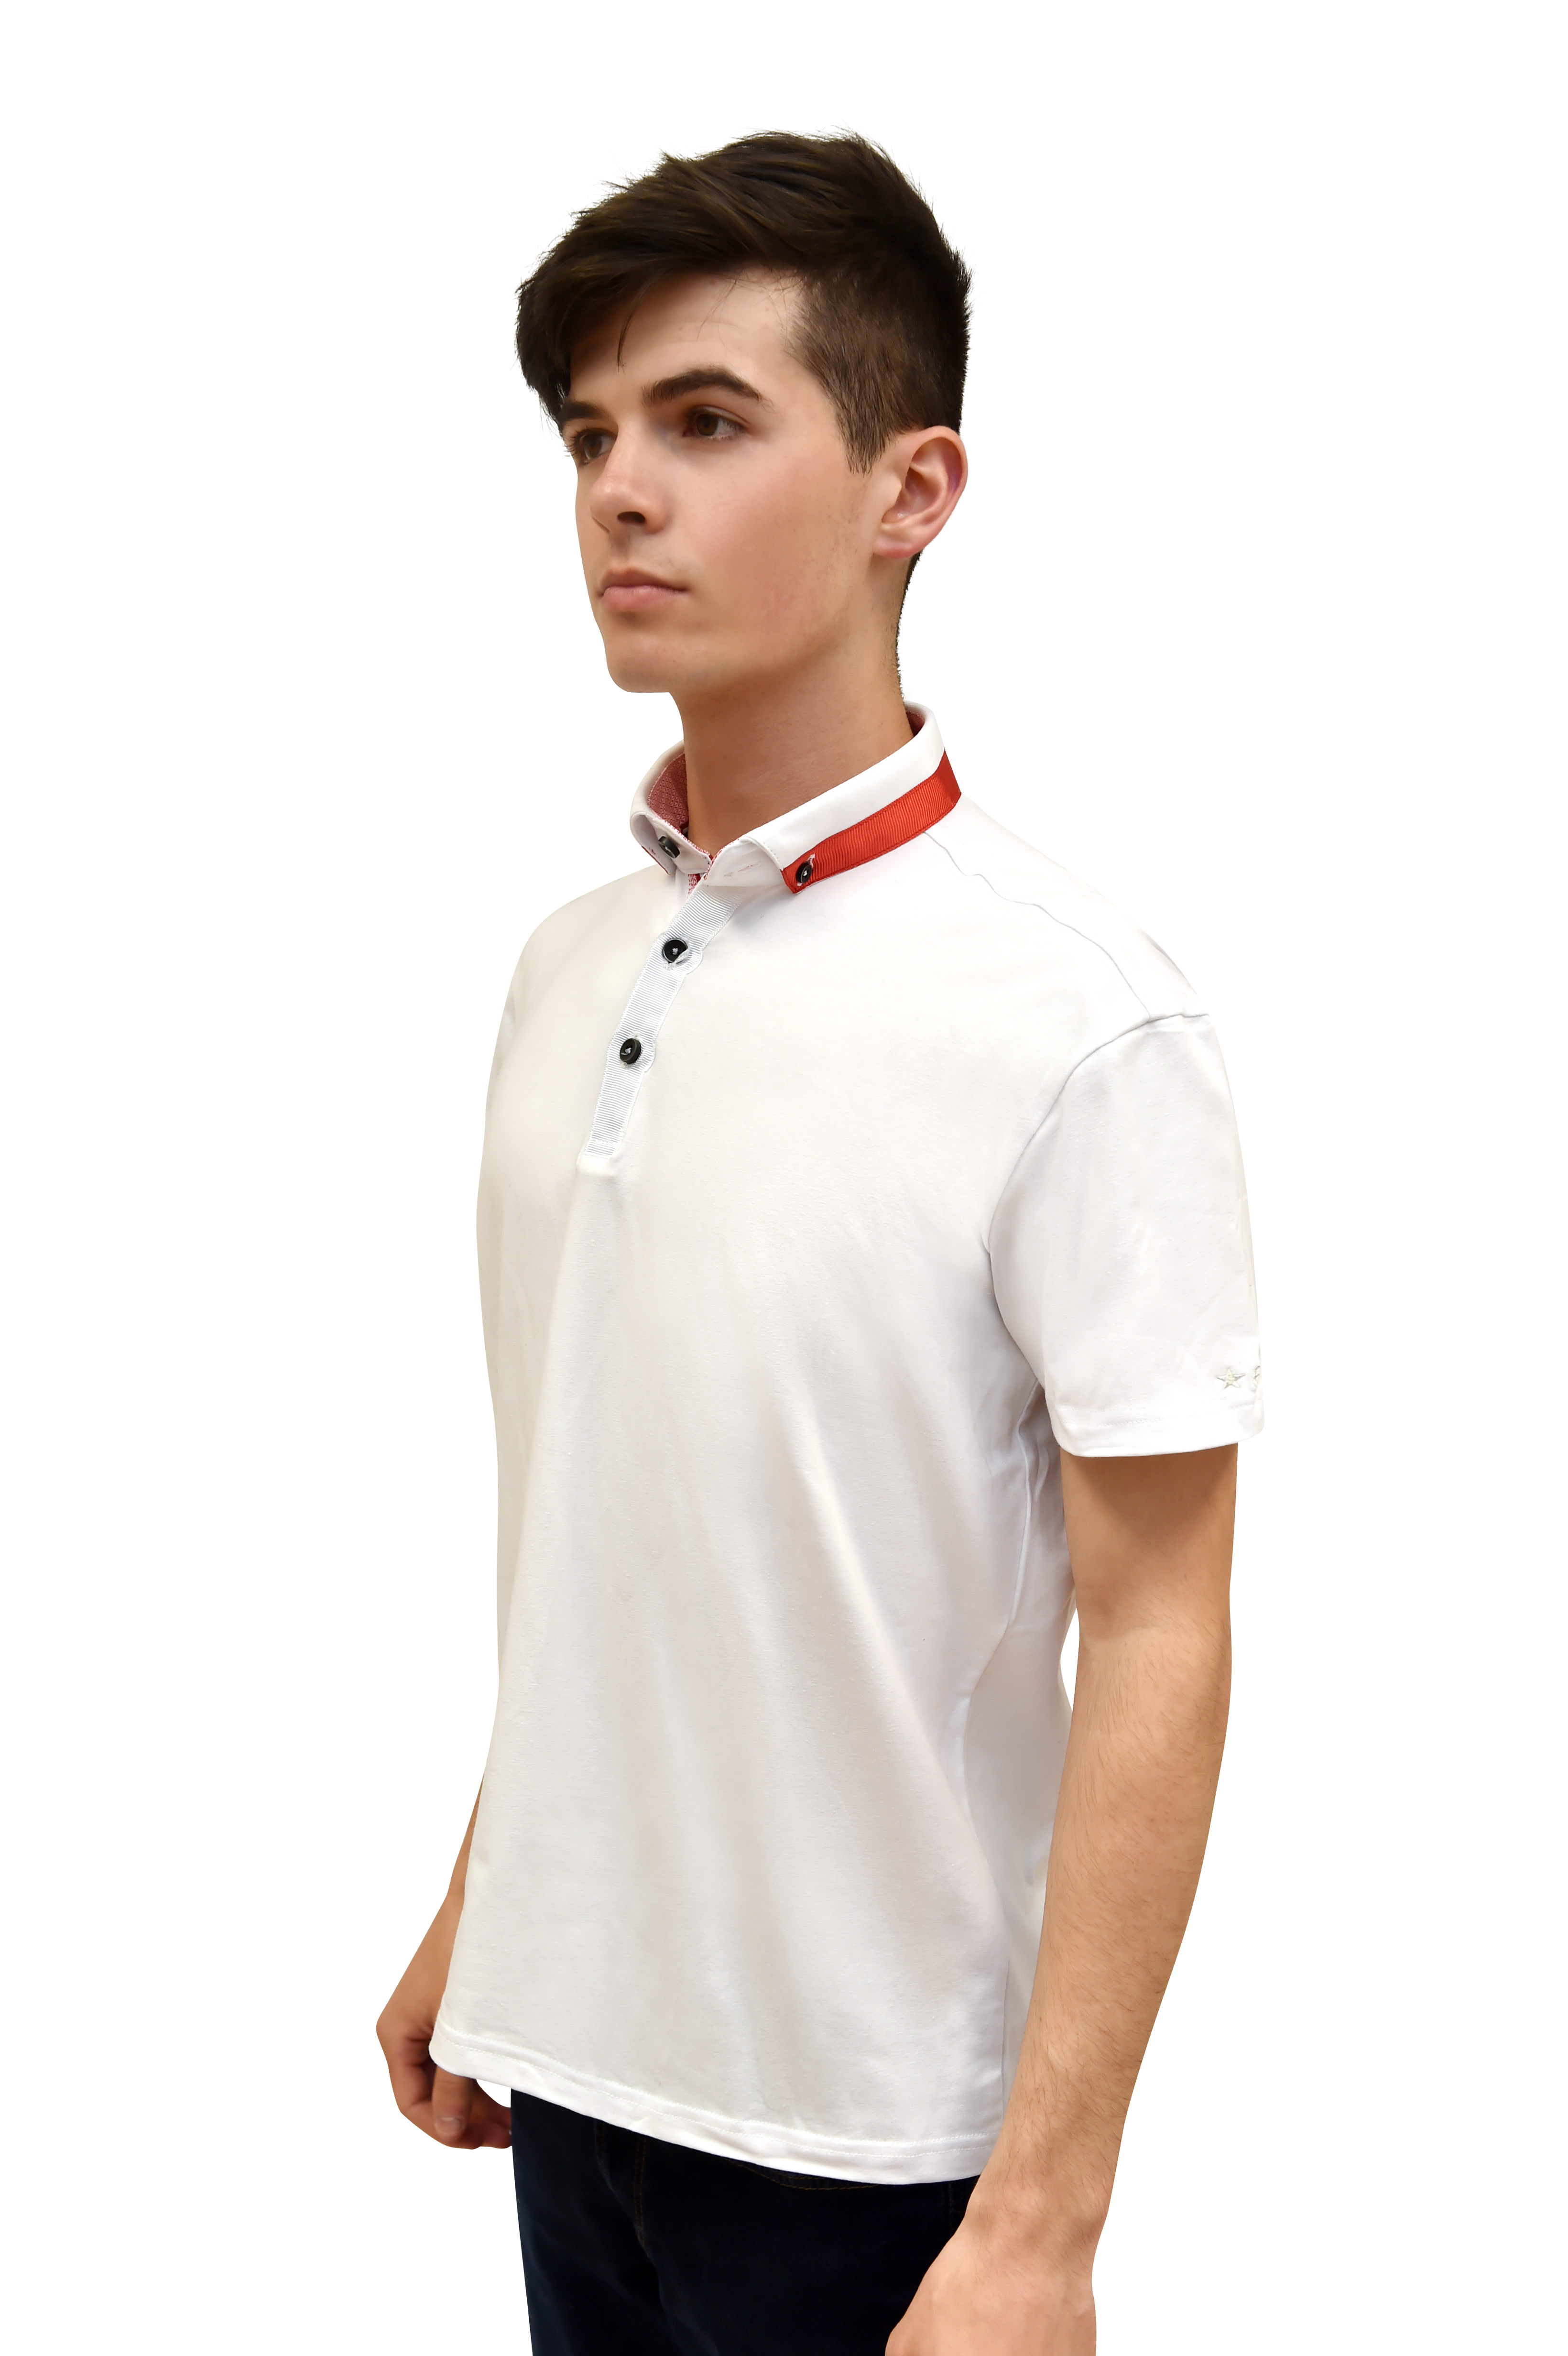 1aebae40 White Polo Shirt With Contrasting Collar - George Best Clothing